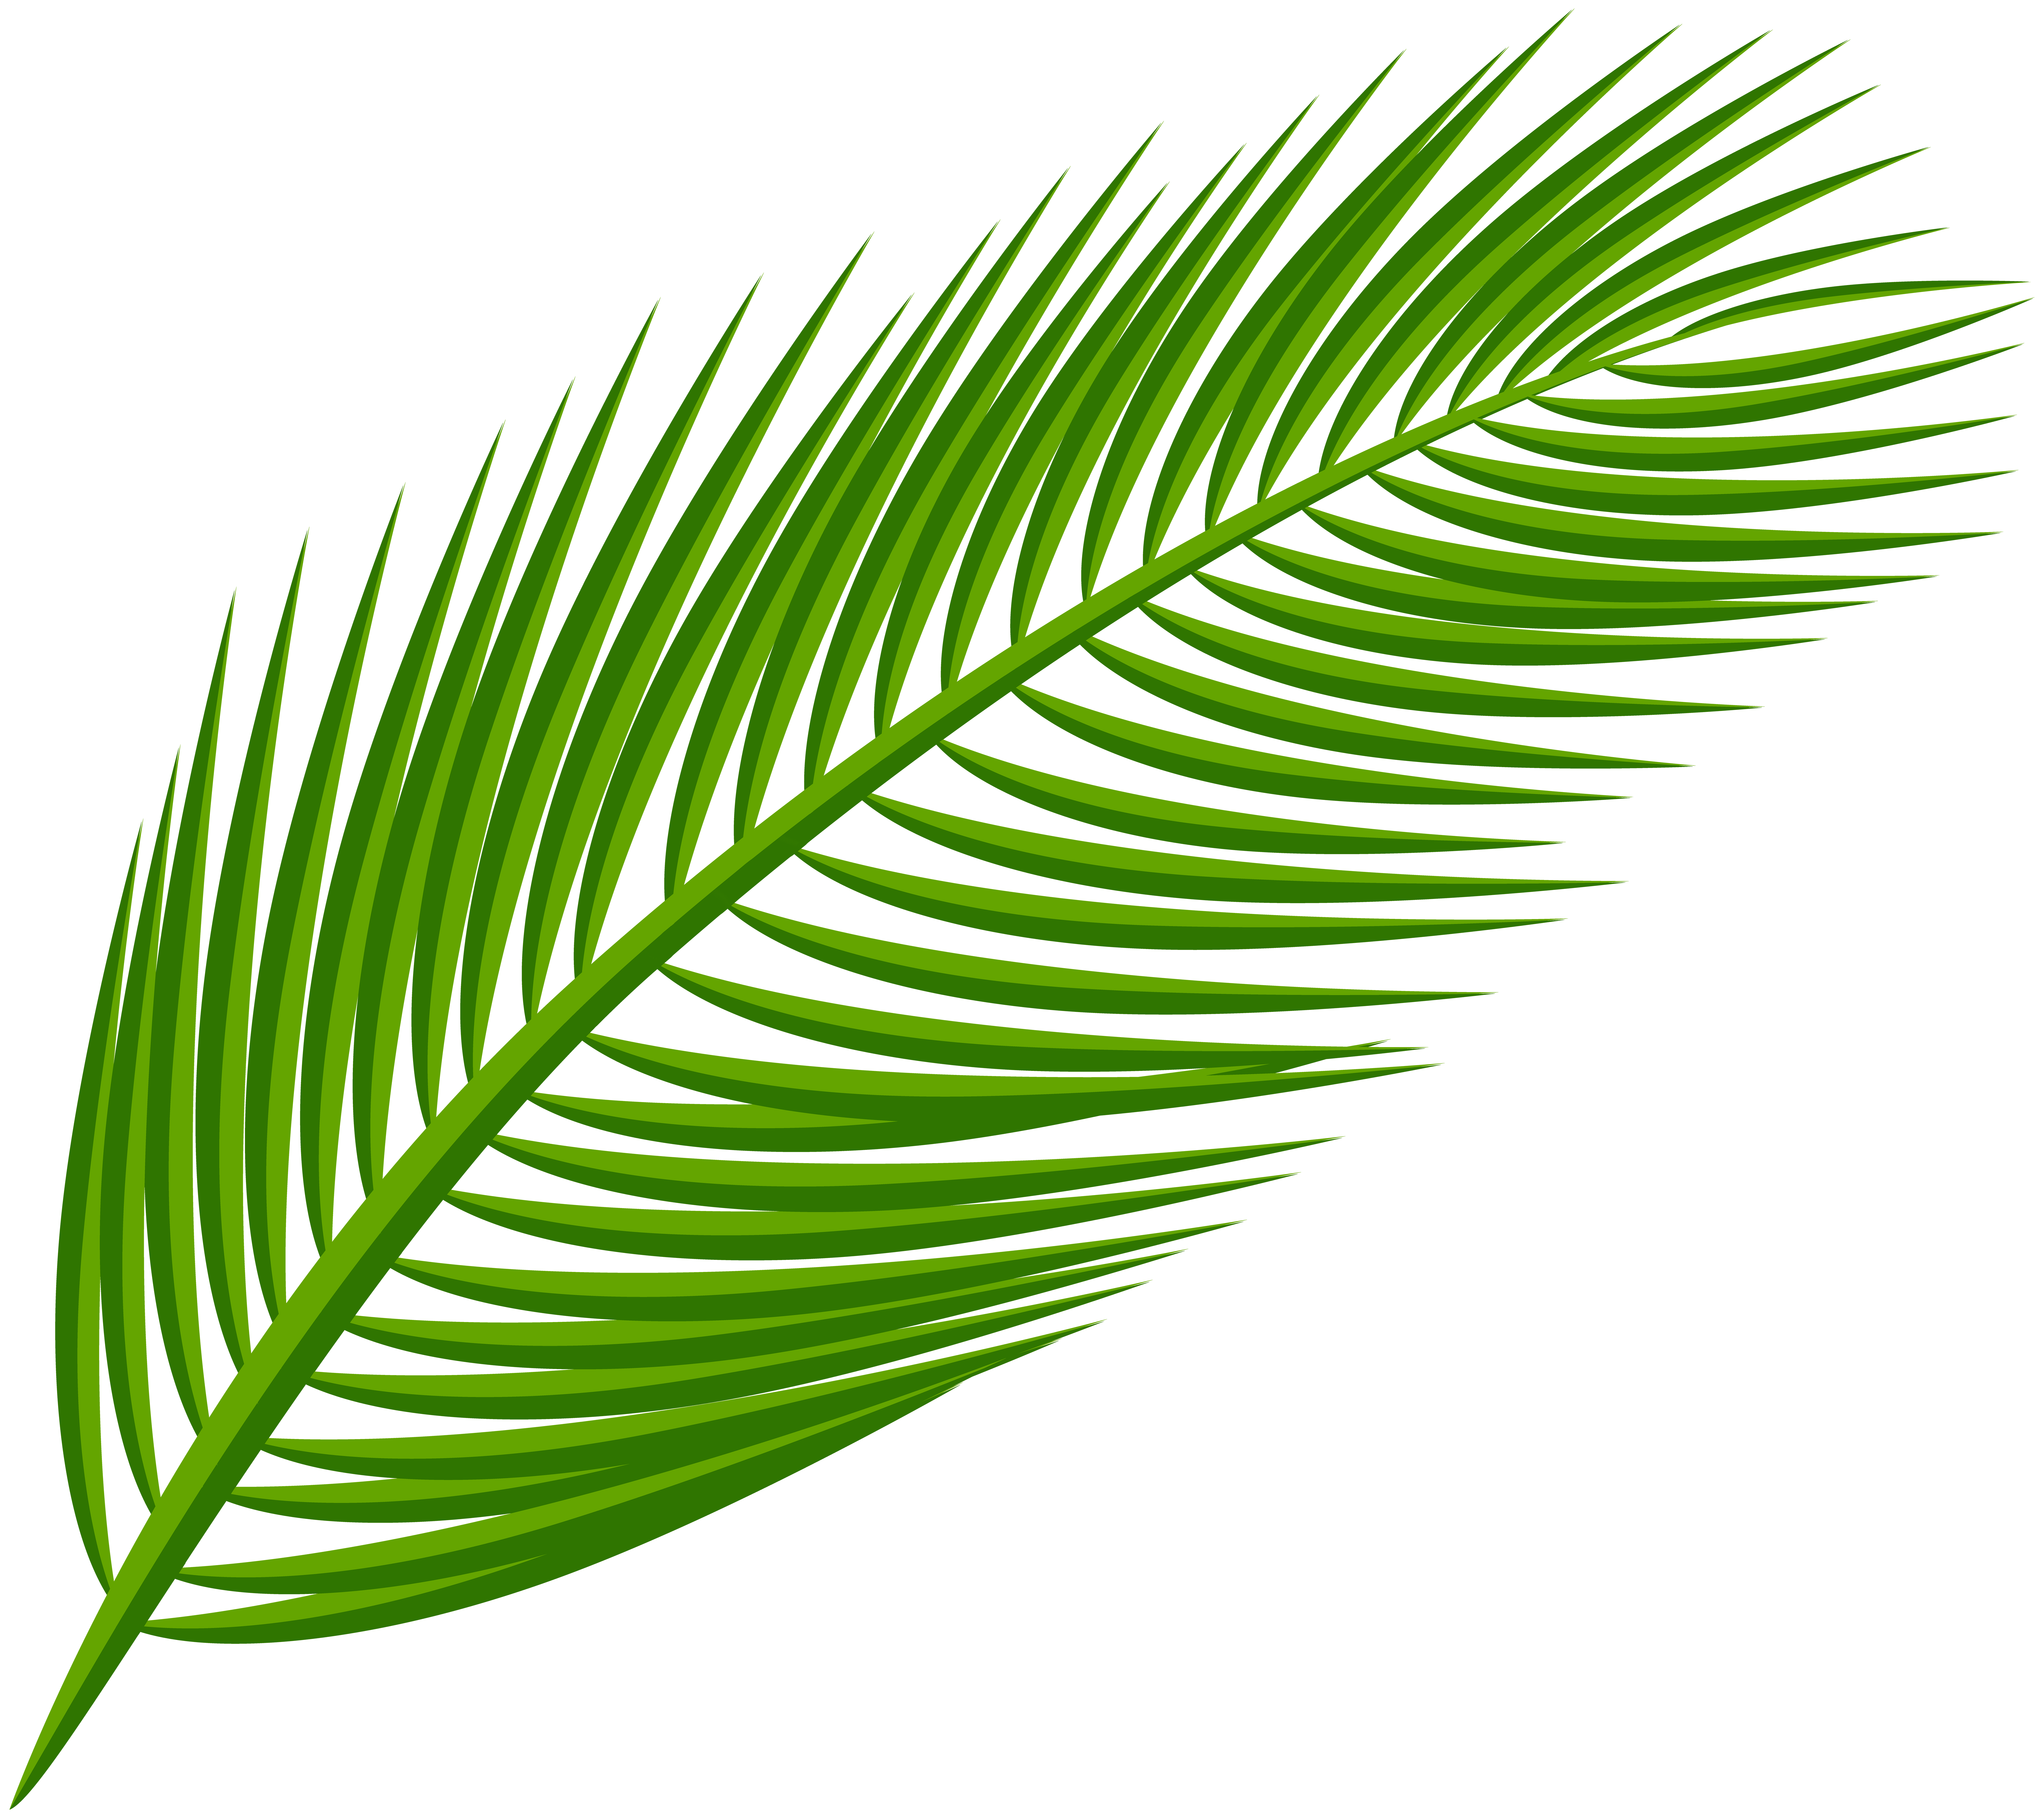 Free clipart of palm leaves